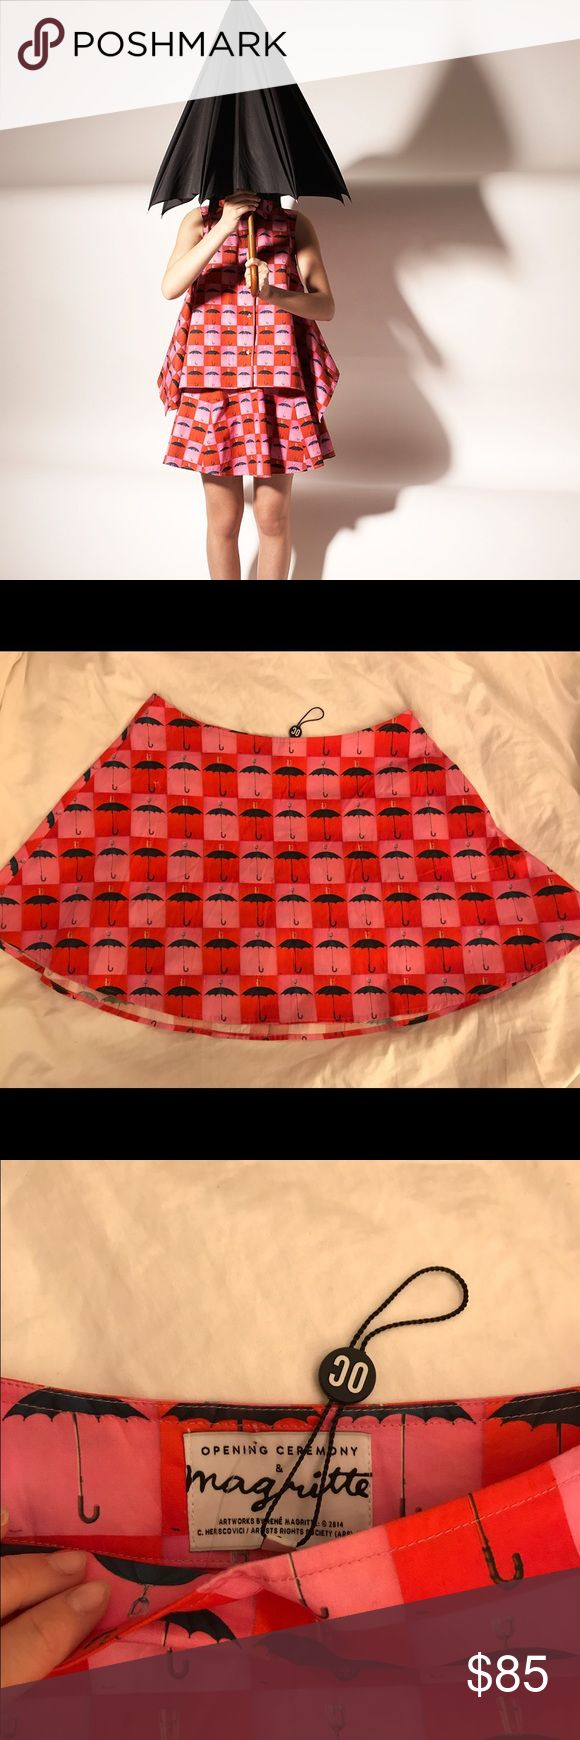 Opening Ceremony Brand New Magritte Skirt NWOT Bought from the Opening Ceremony sample sale in NYC for $120. Never worn. Adorable, sits low on hips with circle skirt shape. Anywhere from size 4-8ish could wear this depending on where on your hips you wear it.  Super hip and quirky. So fun! Opening Ceremony Skirts Mini